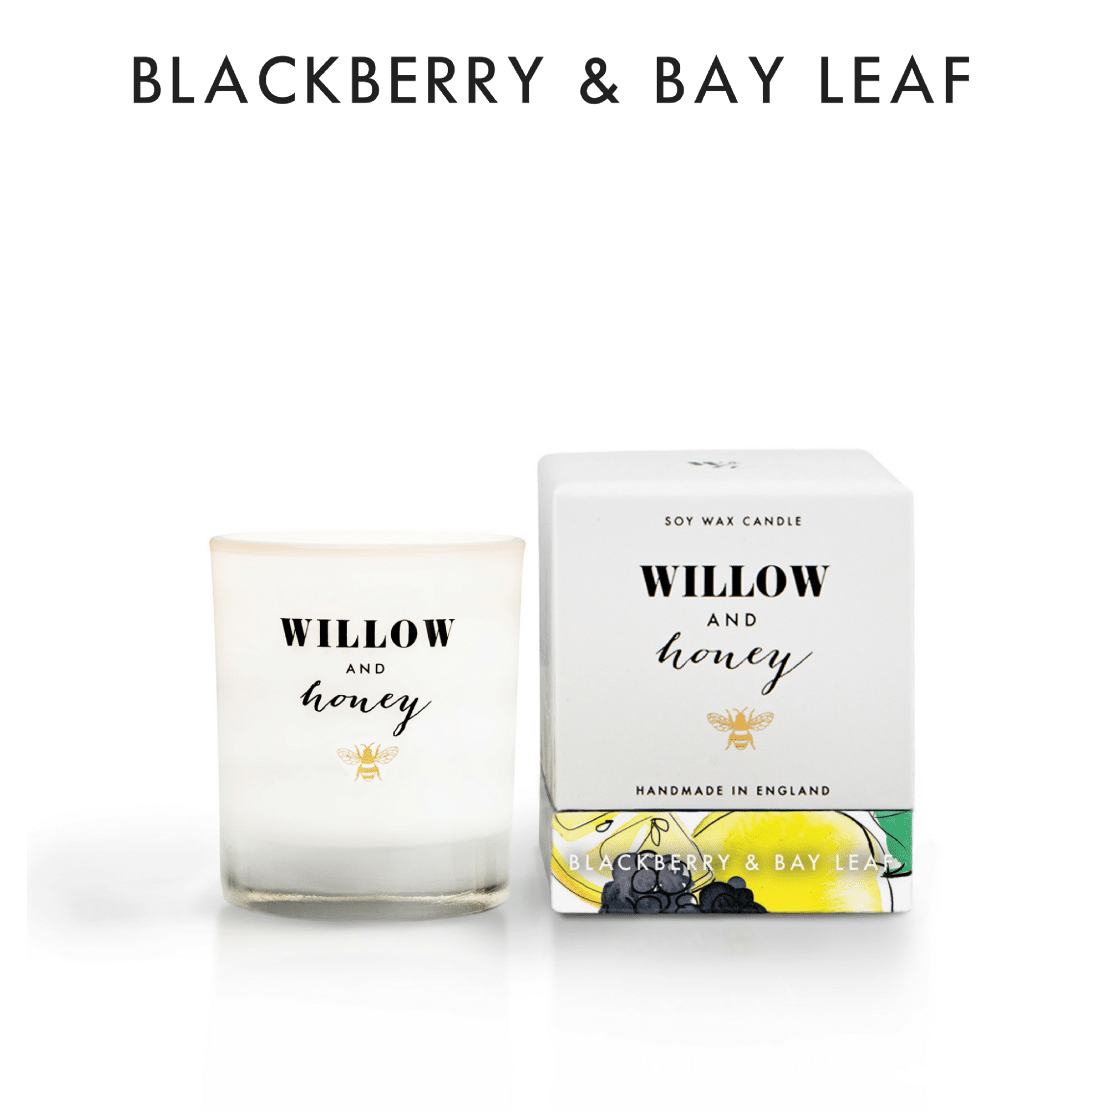 Willow and Honey Blackberry and Bay Leaf Candle 60g